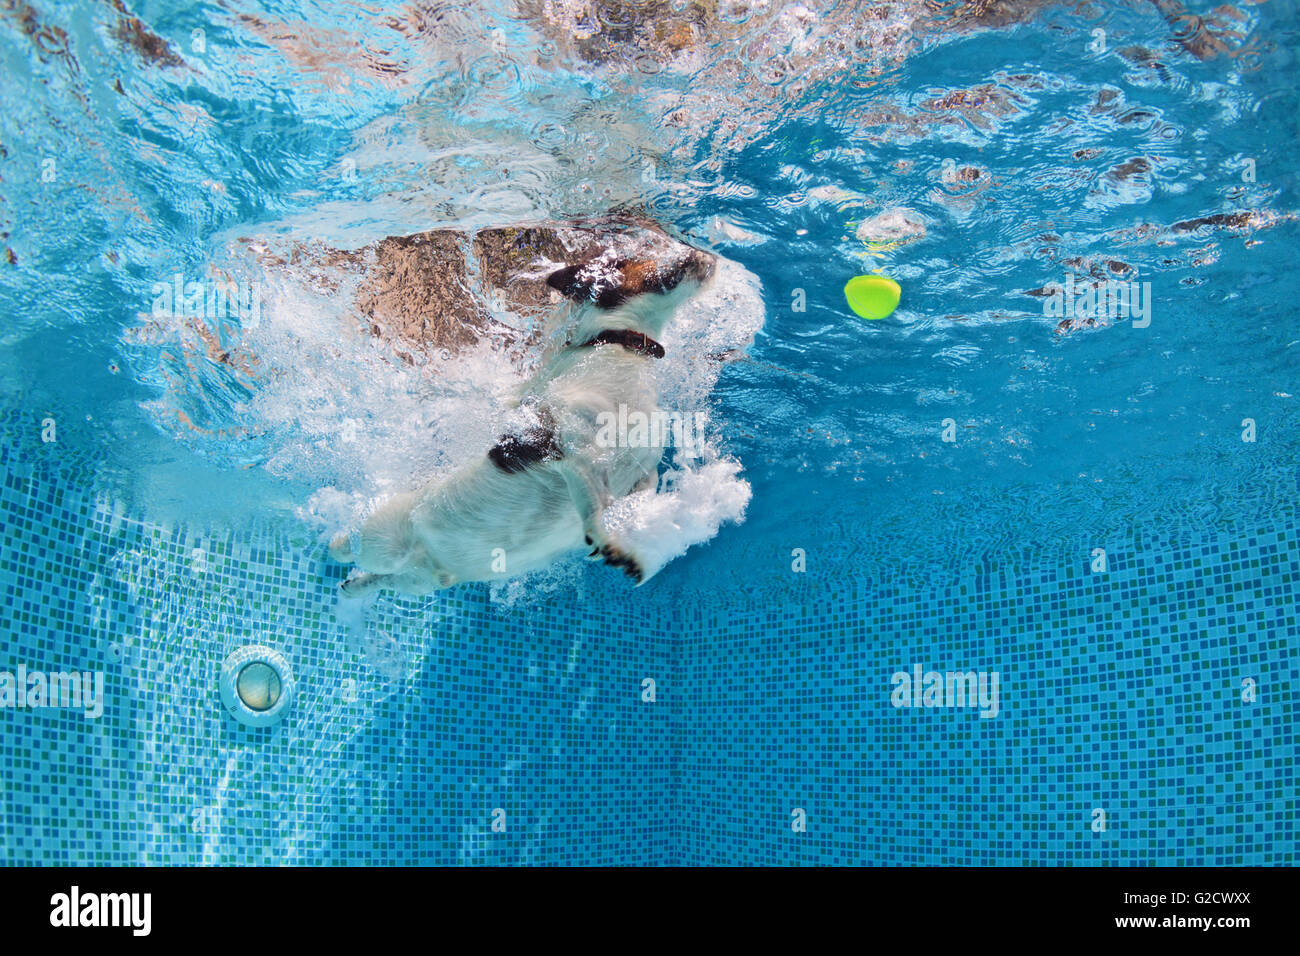 Playful jack russell terrier puppy in swimming pool training with fun stock photo royalty free for How to train your dog to swim in the pool